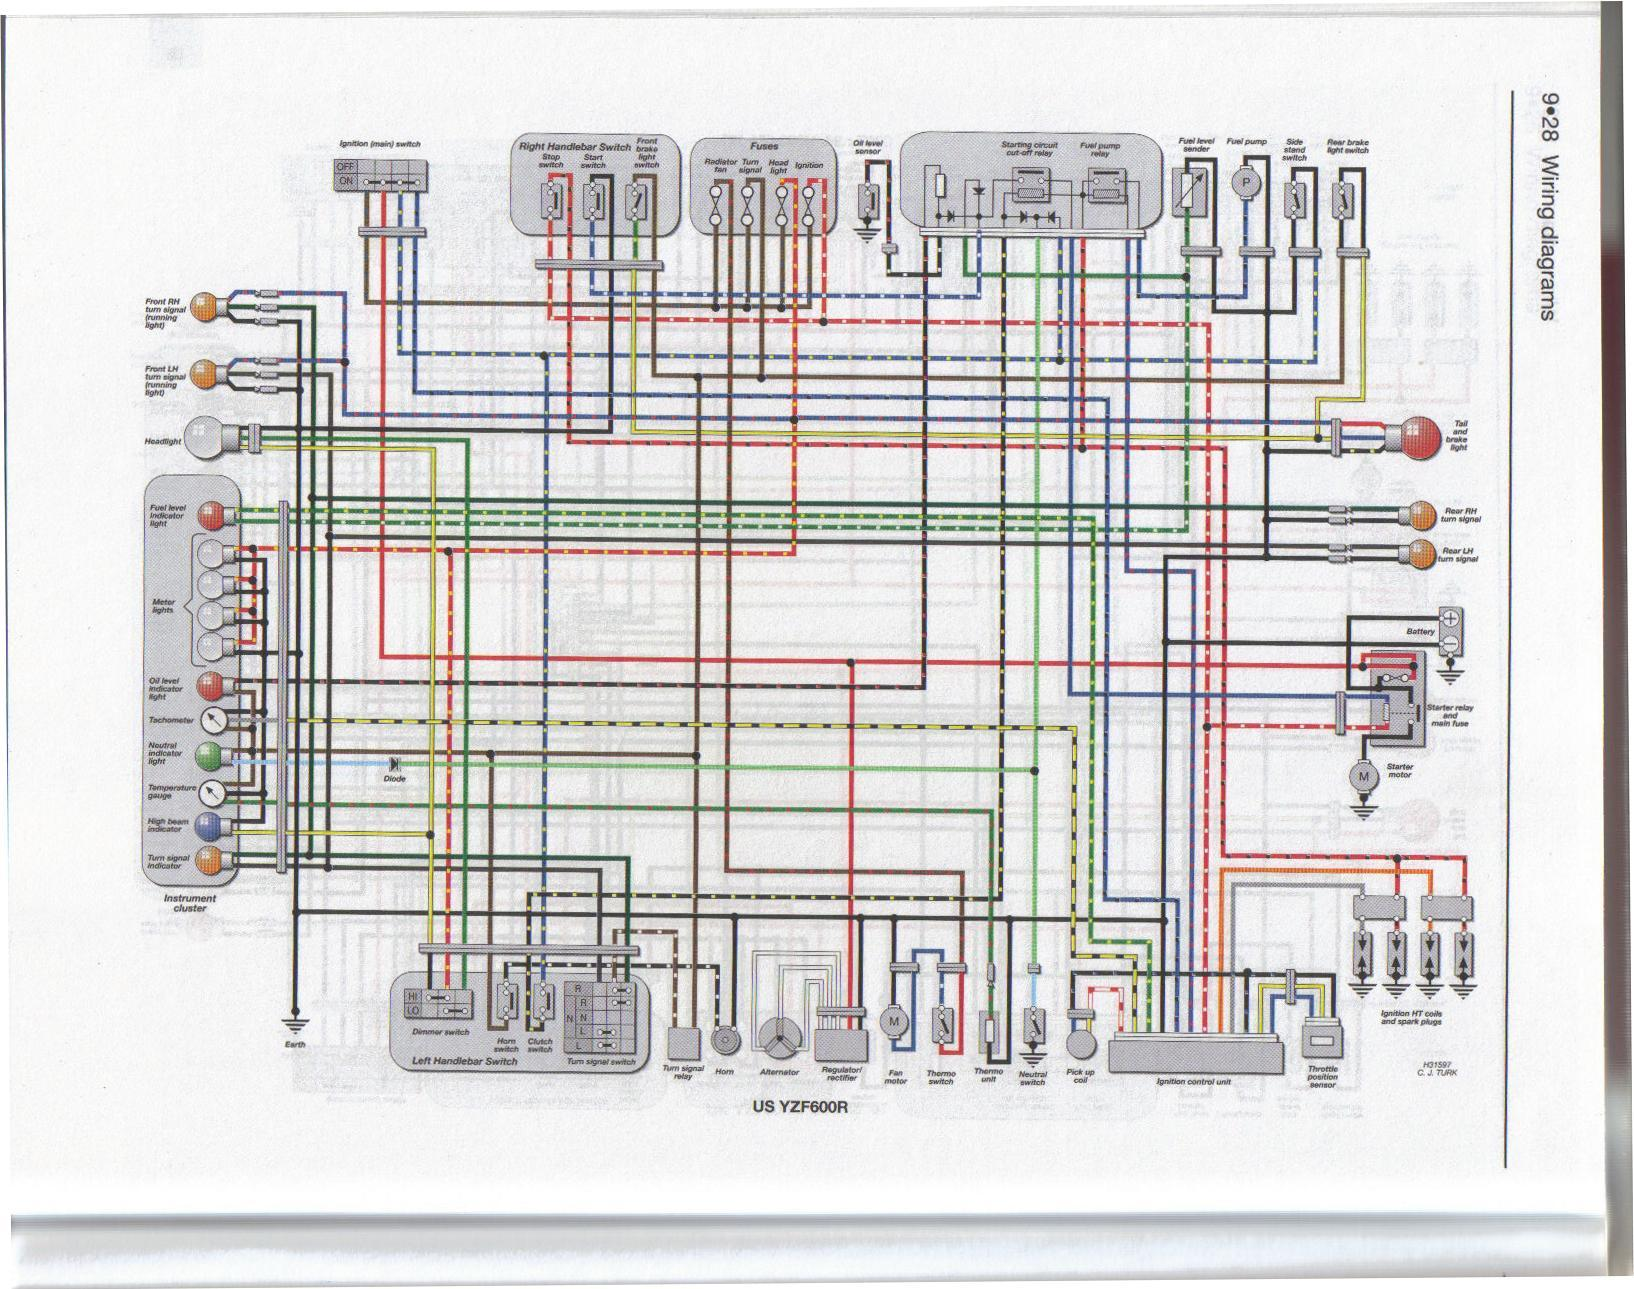 Painless Wiring Diagram 65 Mustang further 1969 Camaro Front Suspension Schematic furthermore BrianLaughlin MGBGT moreover 1968 Ford Falcon Wiring Diagram further 86 Chevy Truck Charging System Wiring Diagram. on 1969 camaro alternator